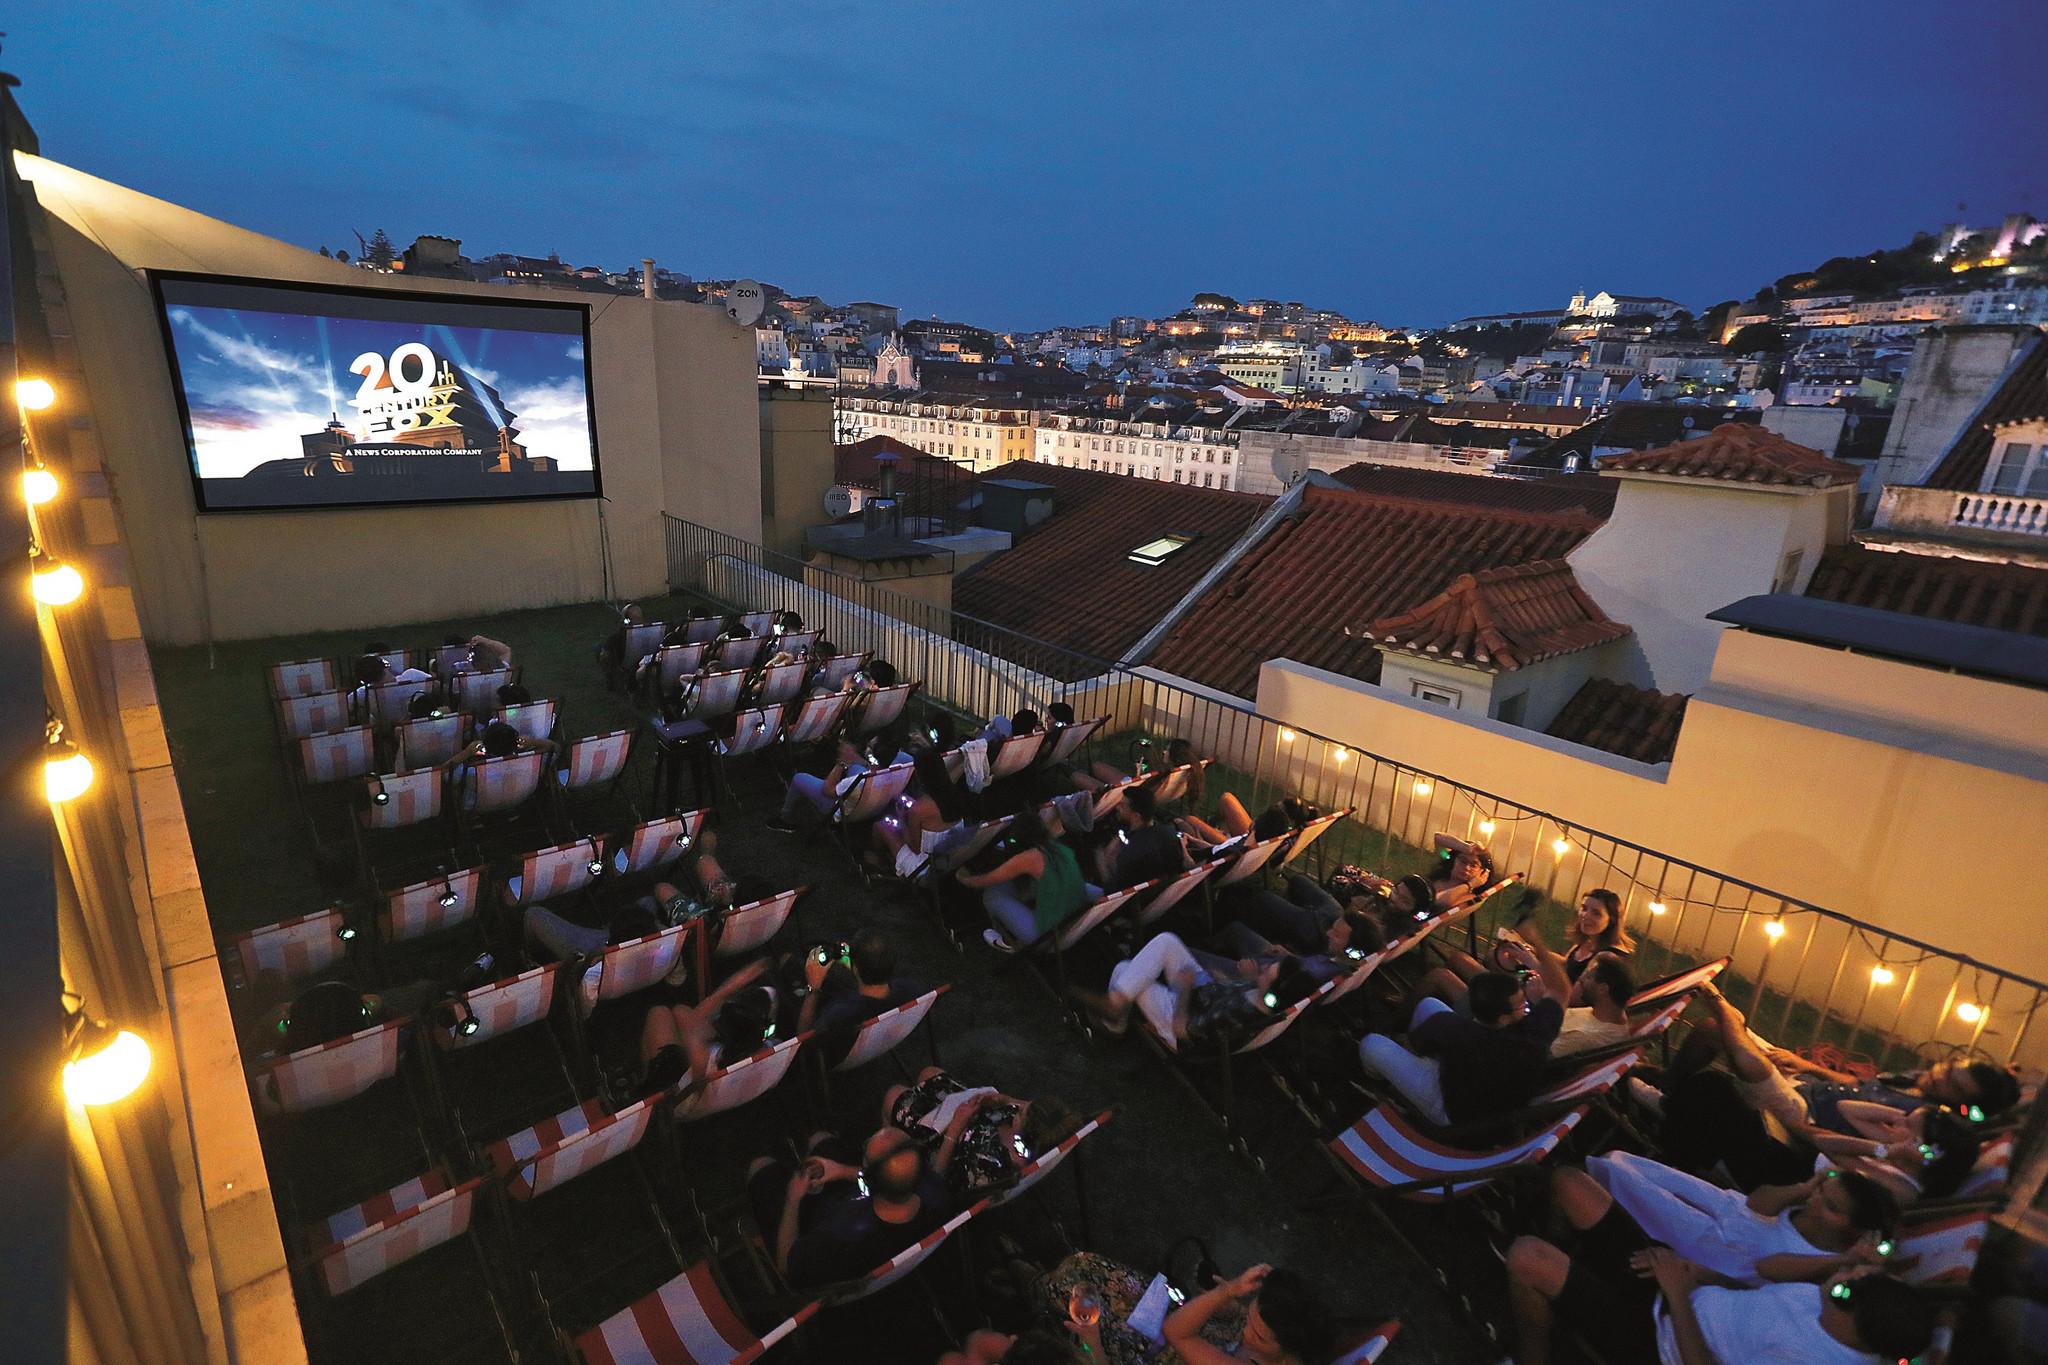 MB Cinema Chiado 01.jpg